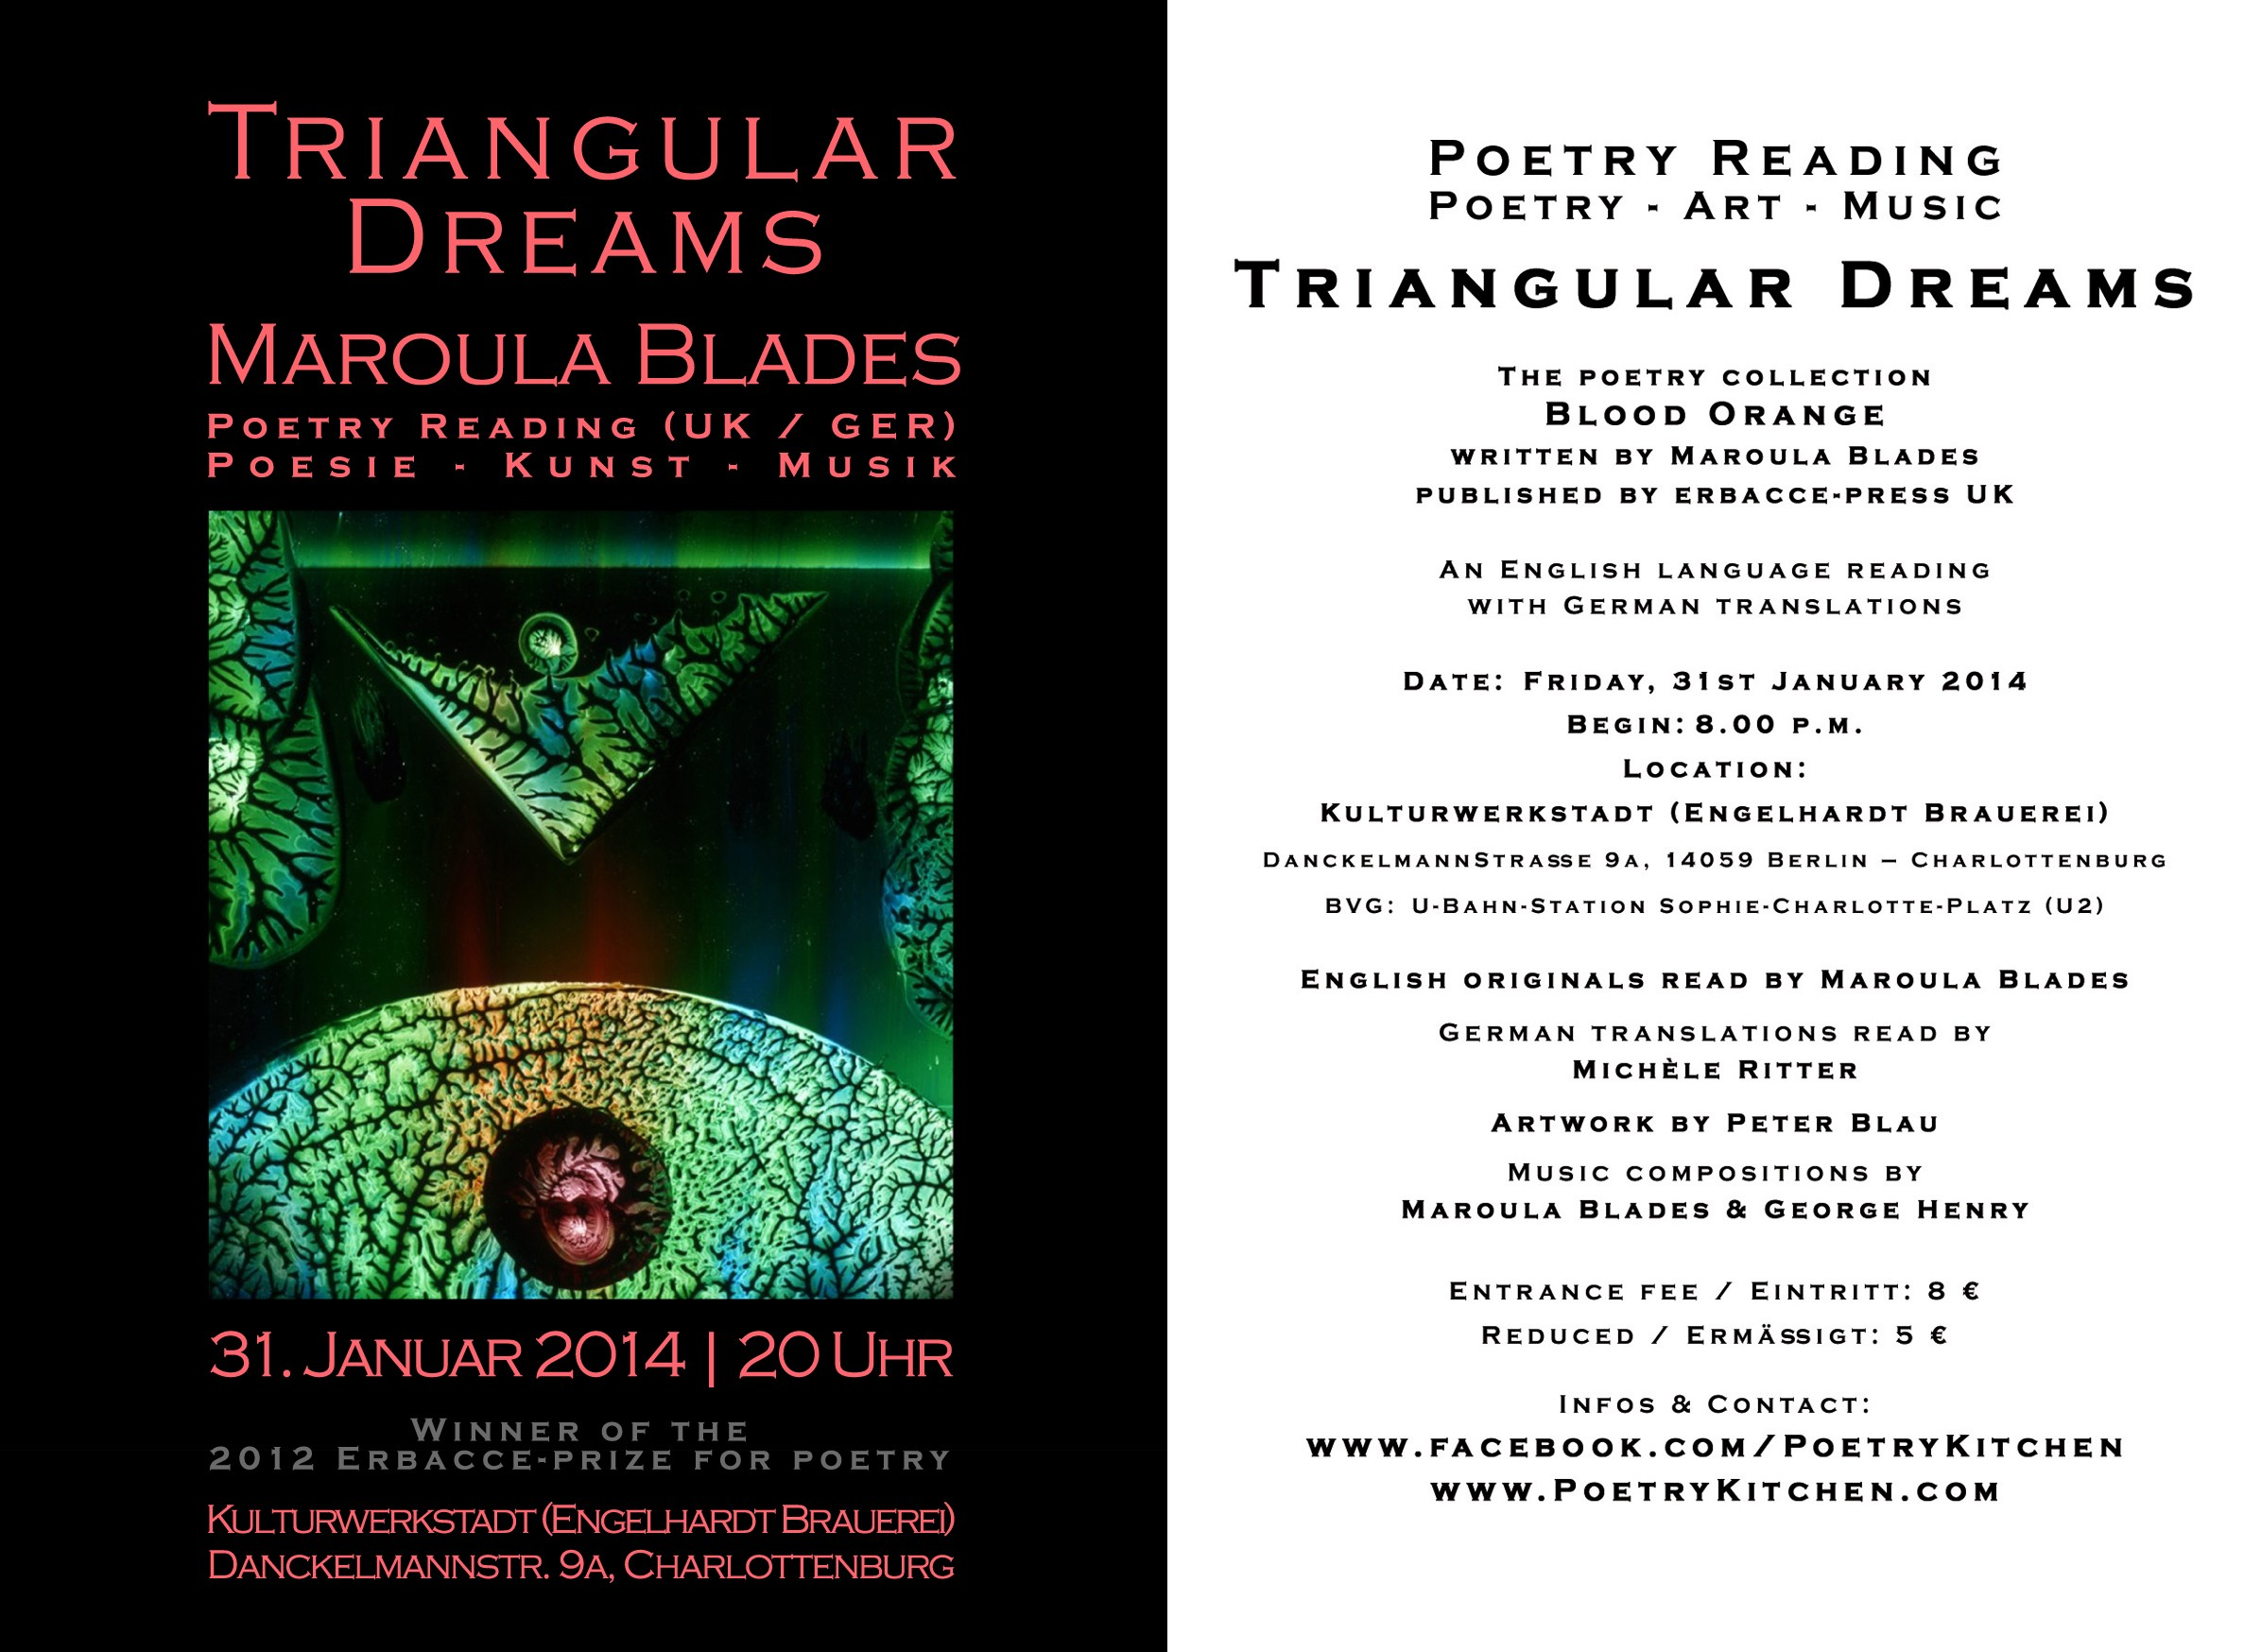 email flyer - Maroula Blades - TRIANGULAR DREAMS